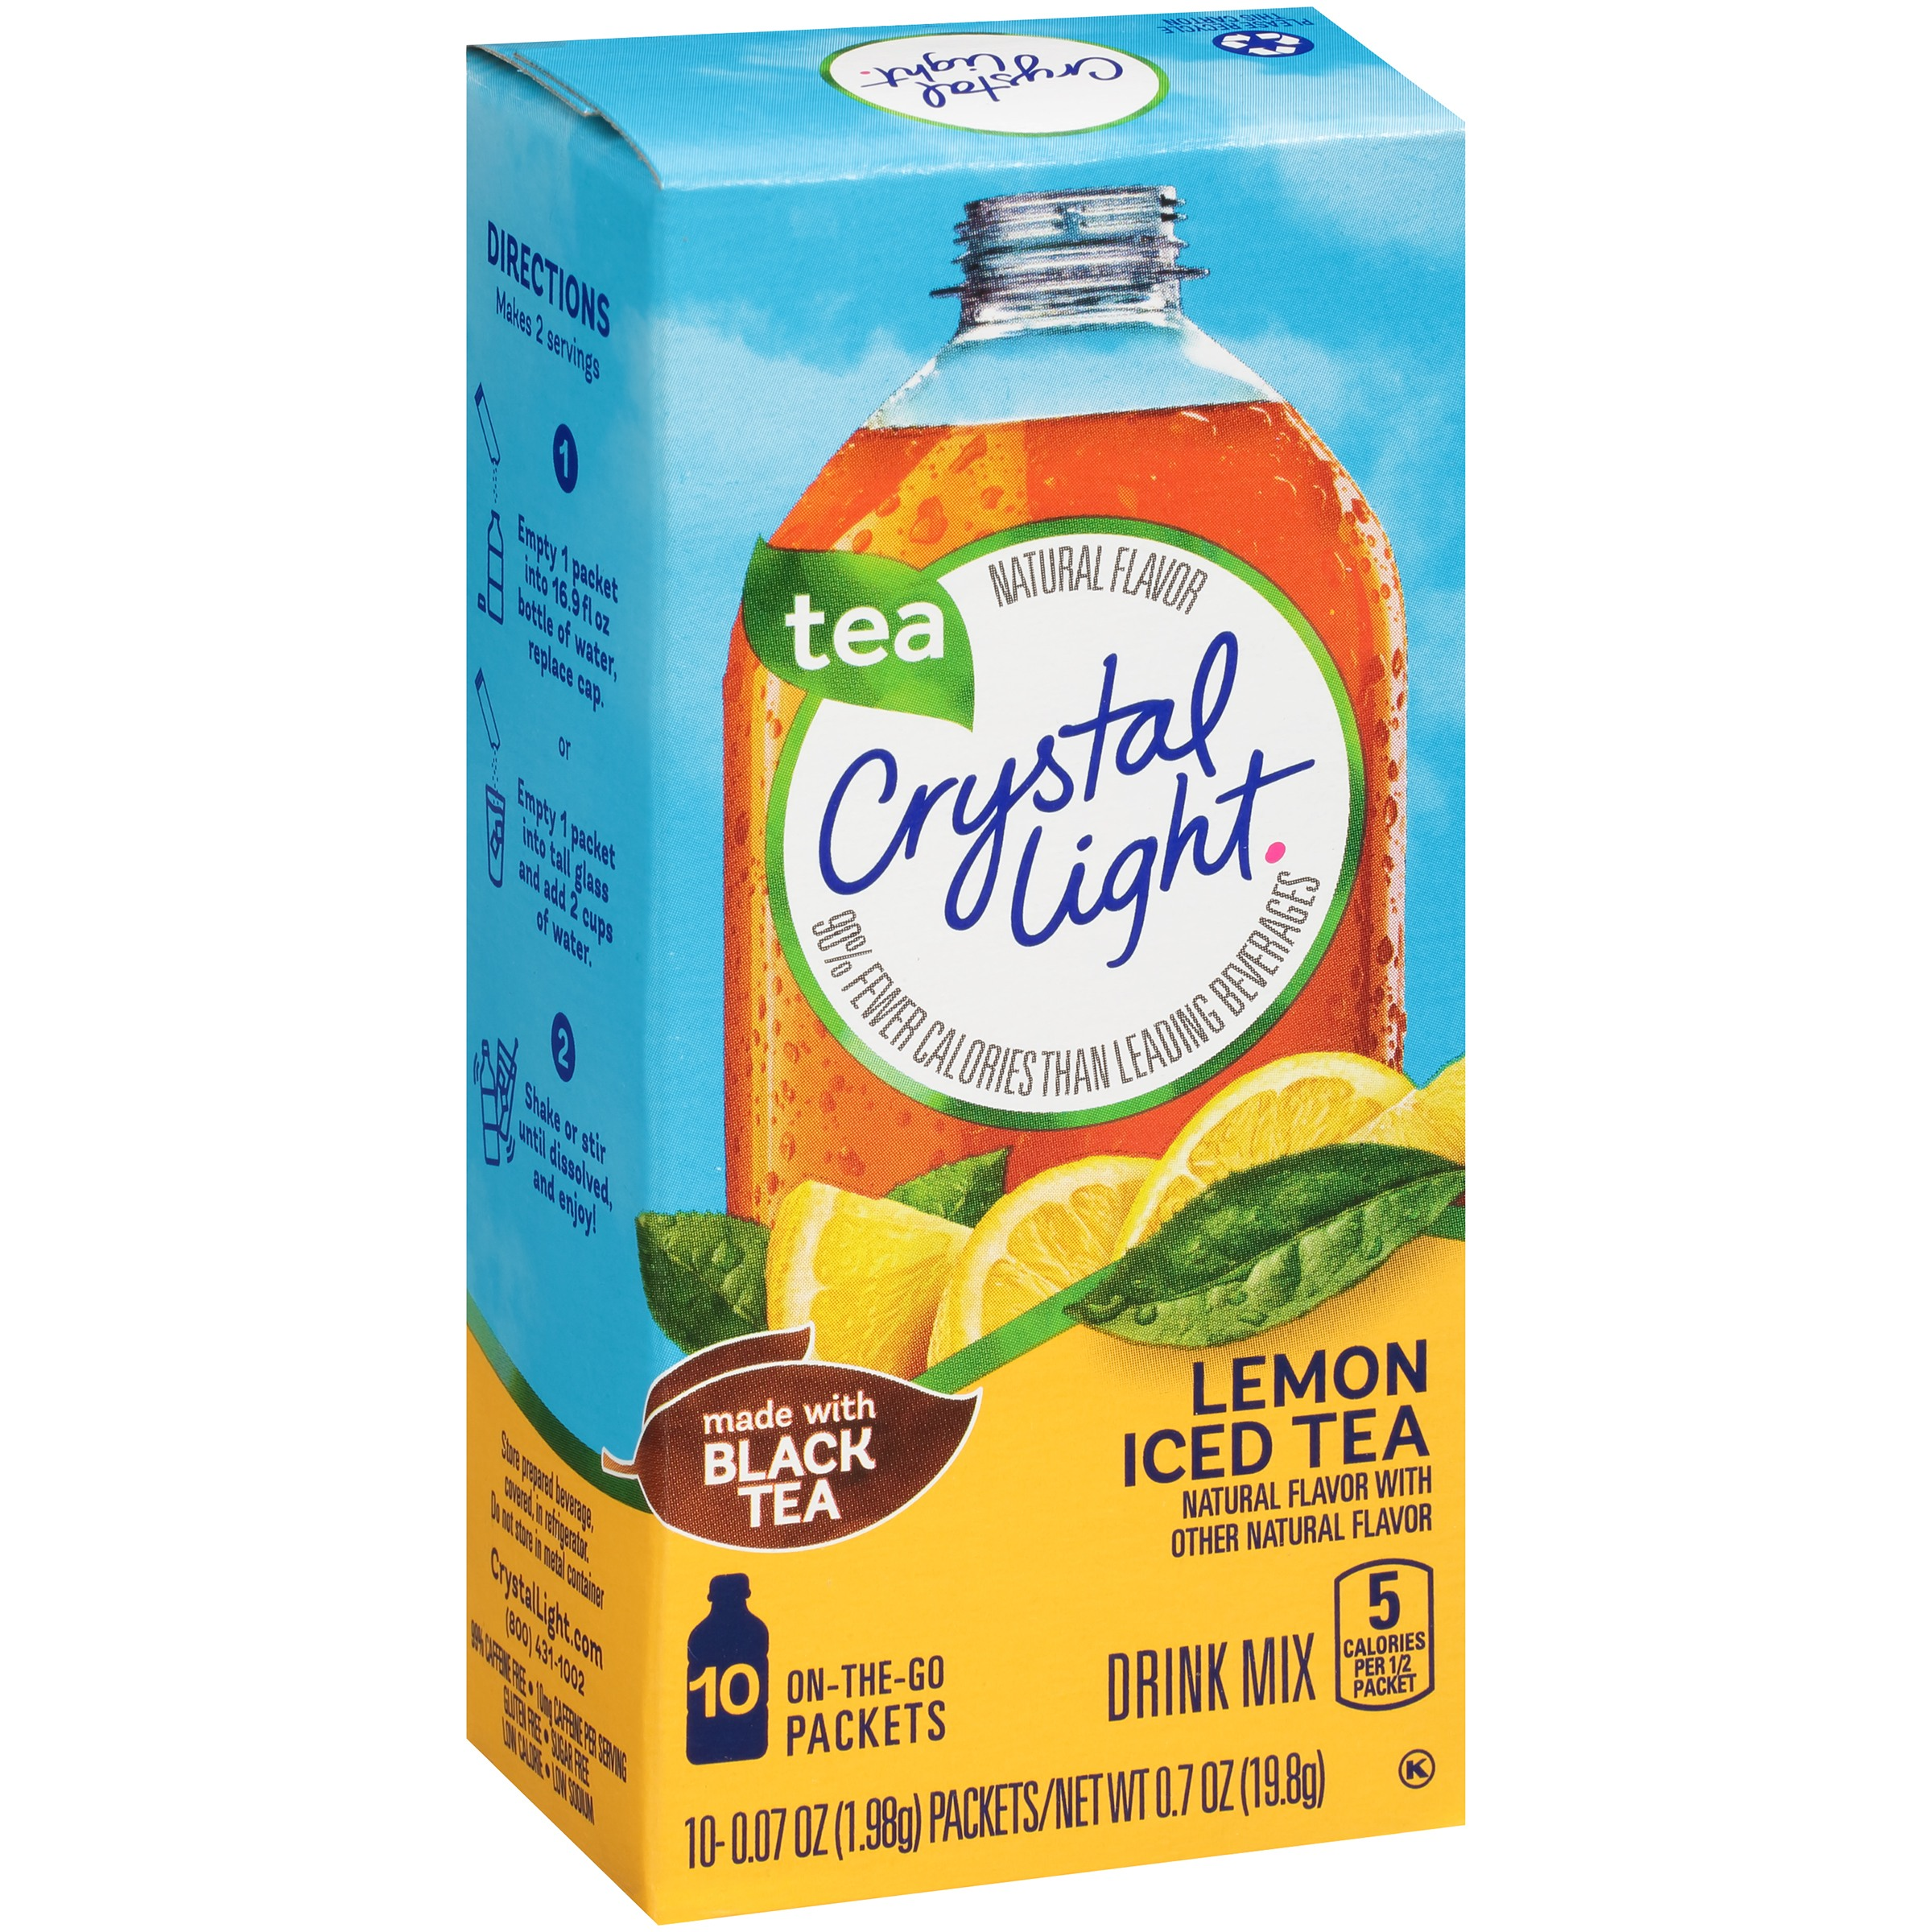 (30 Pack) Crystal Light On-the-Go Lemon Iced Tea Drink Mix, 10 - 0.07 oz Box